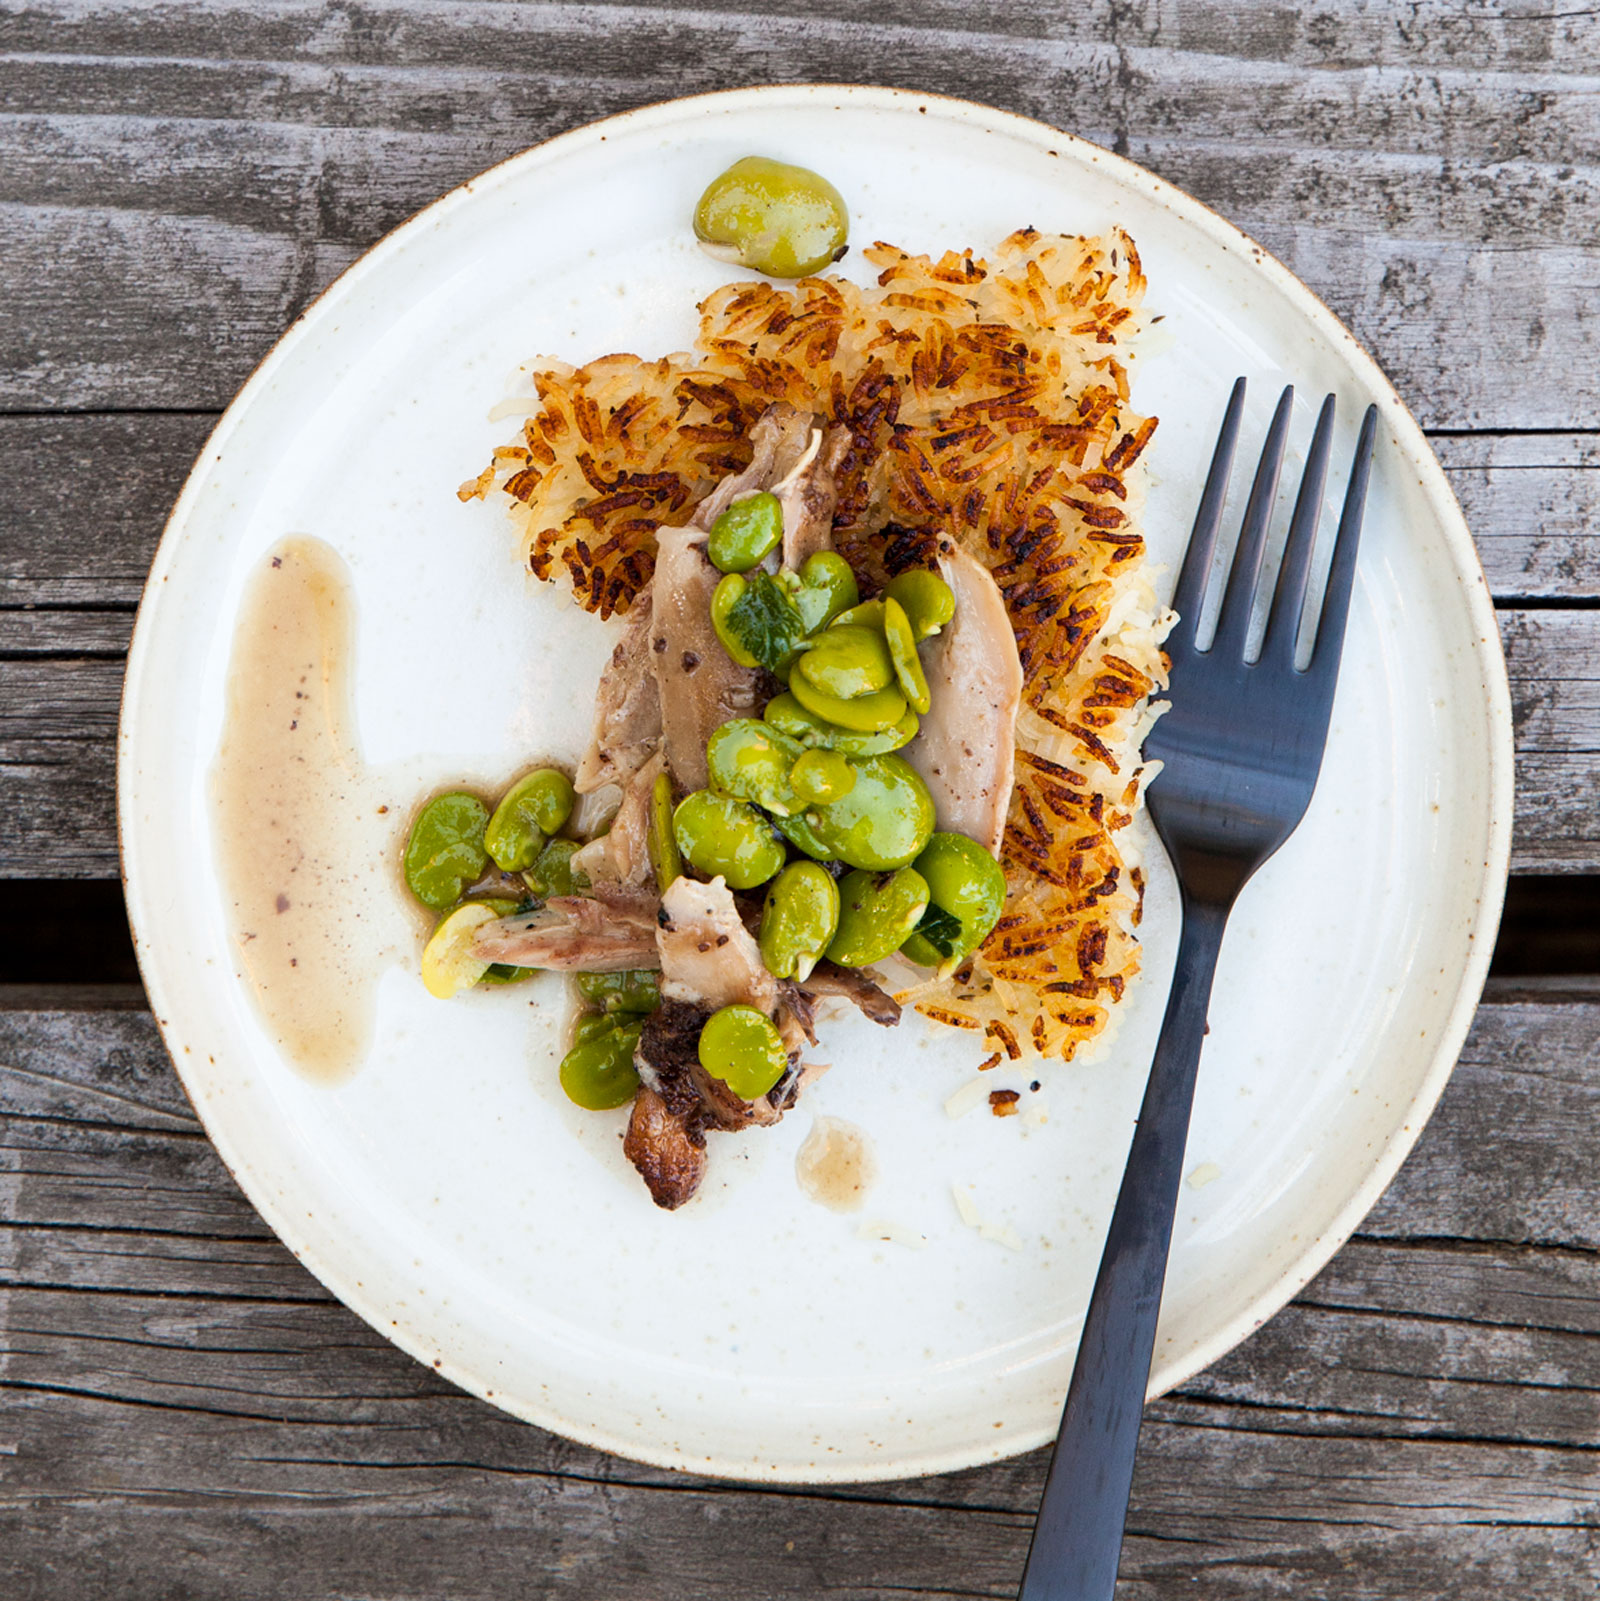 Braised Chicken with Fava Beans, Crispy Rice, Dried Mint and Lemon